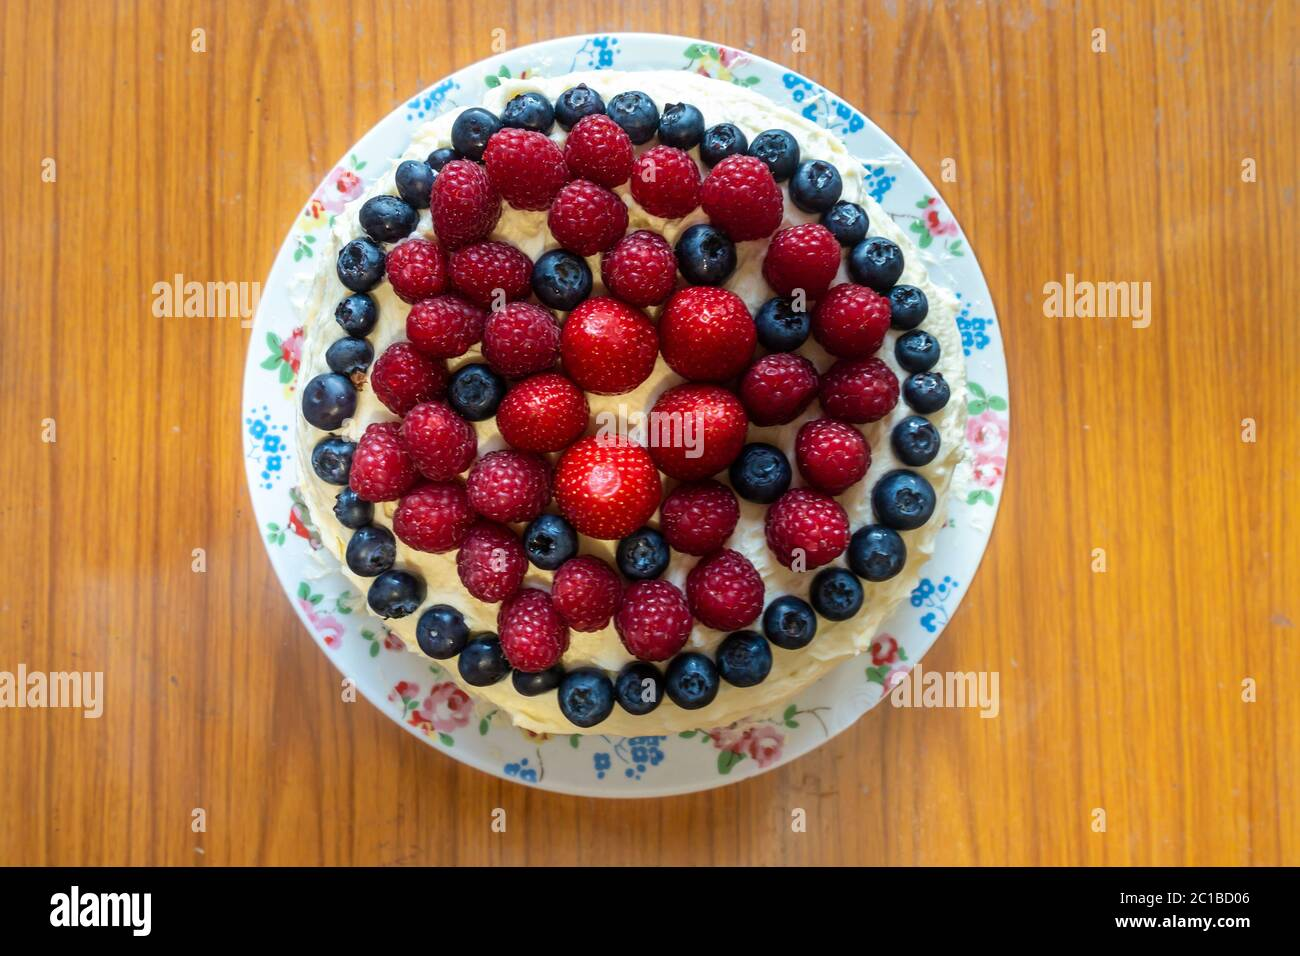 a-cake-decorated-with-butter-icing-and-summer-fruits-including-strawberries-raspberries-and-blueberries-2C1BD06.jpg